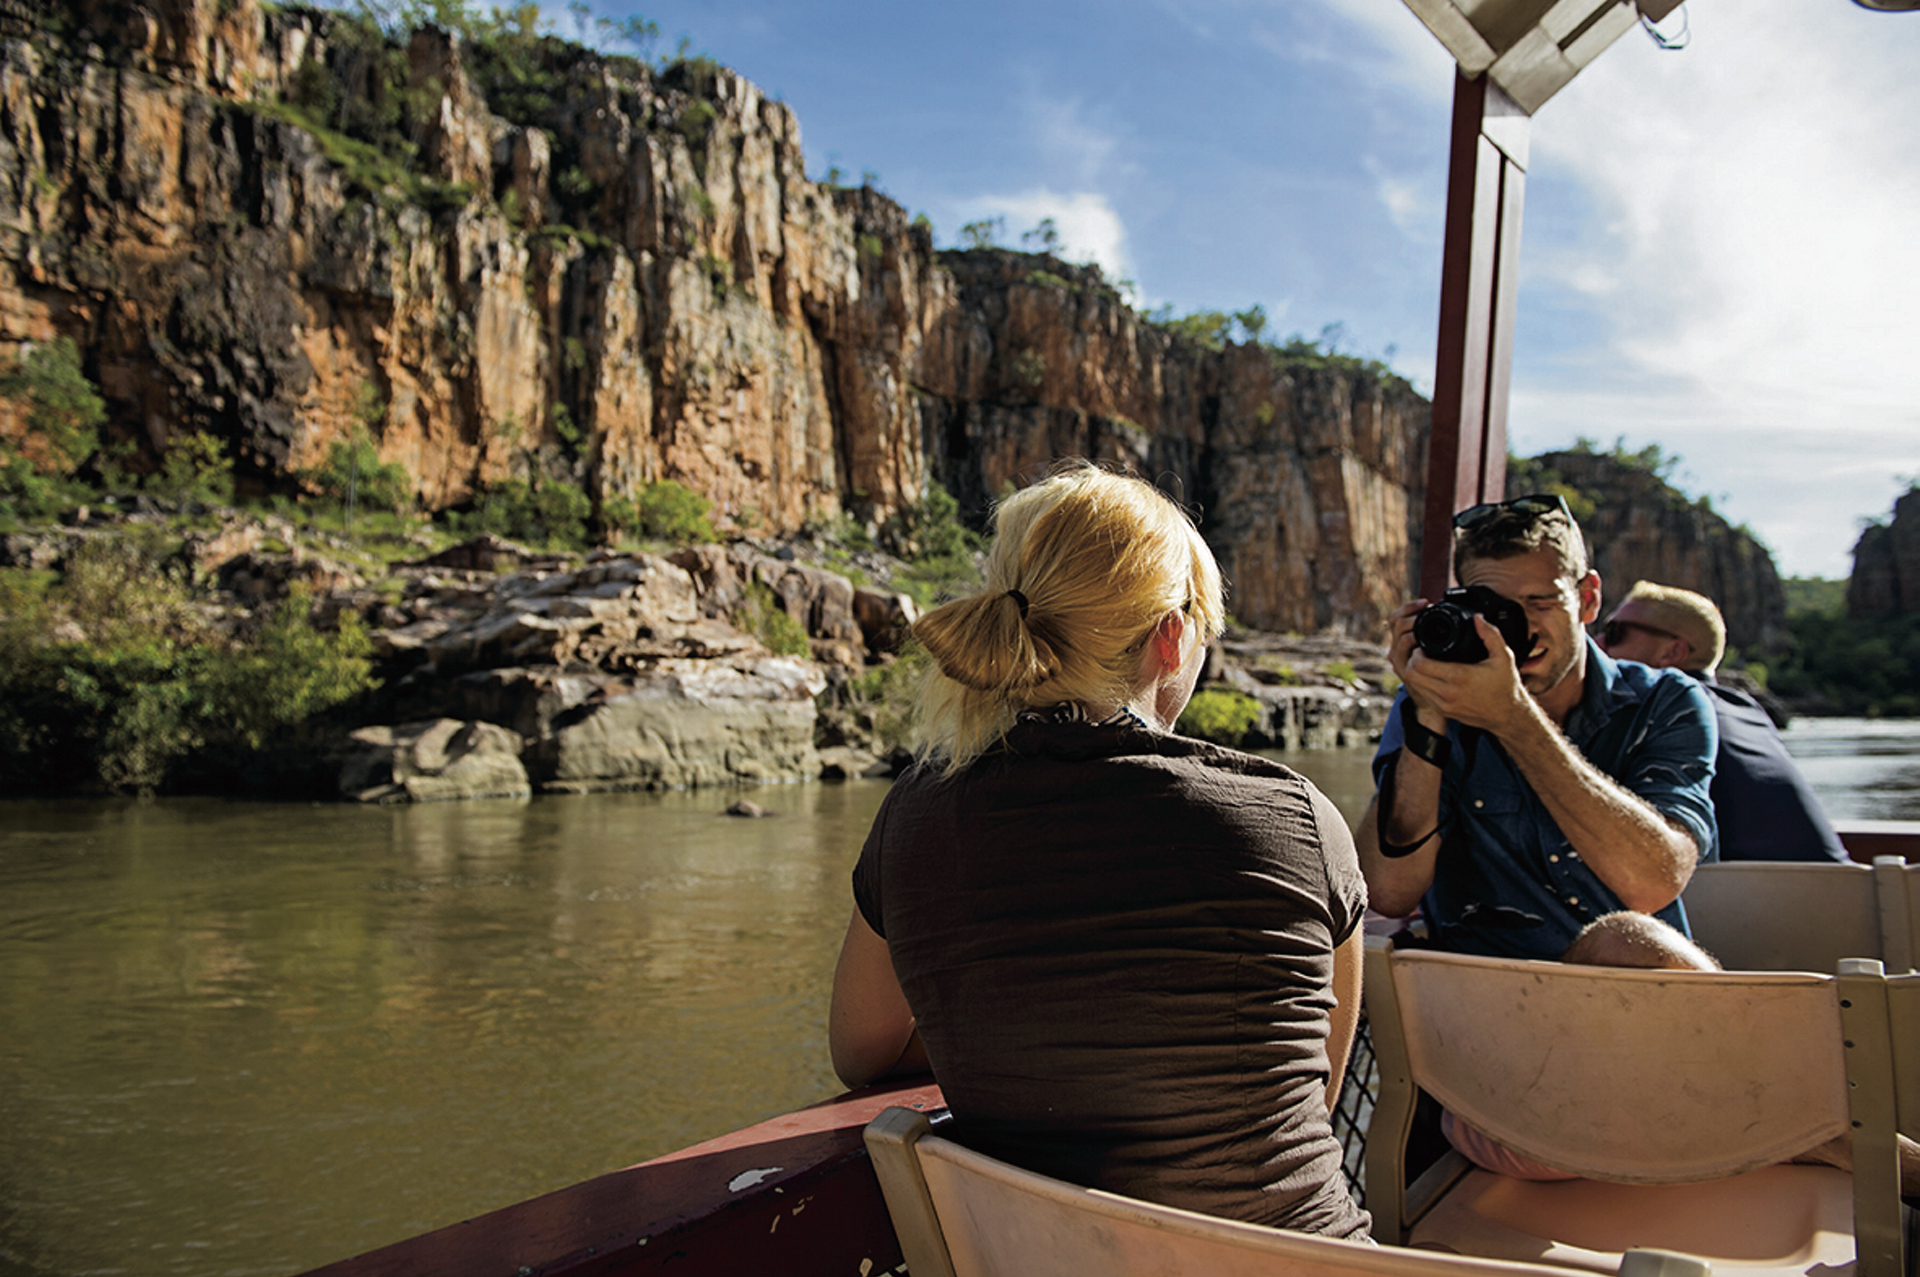 In der Katherine Gorge ©Shaana McNaught